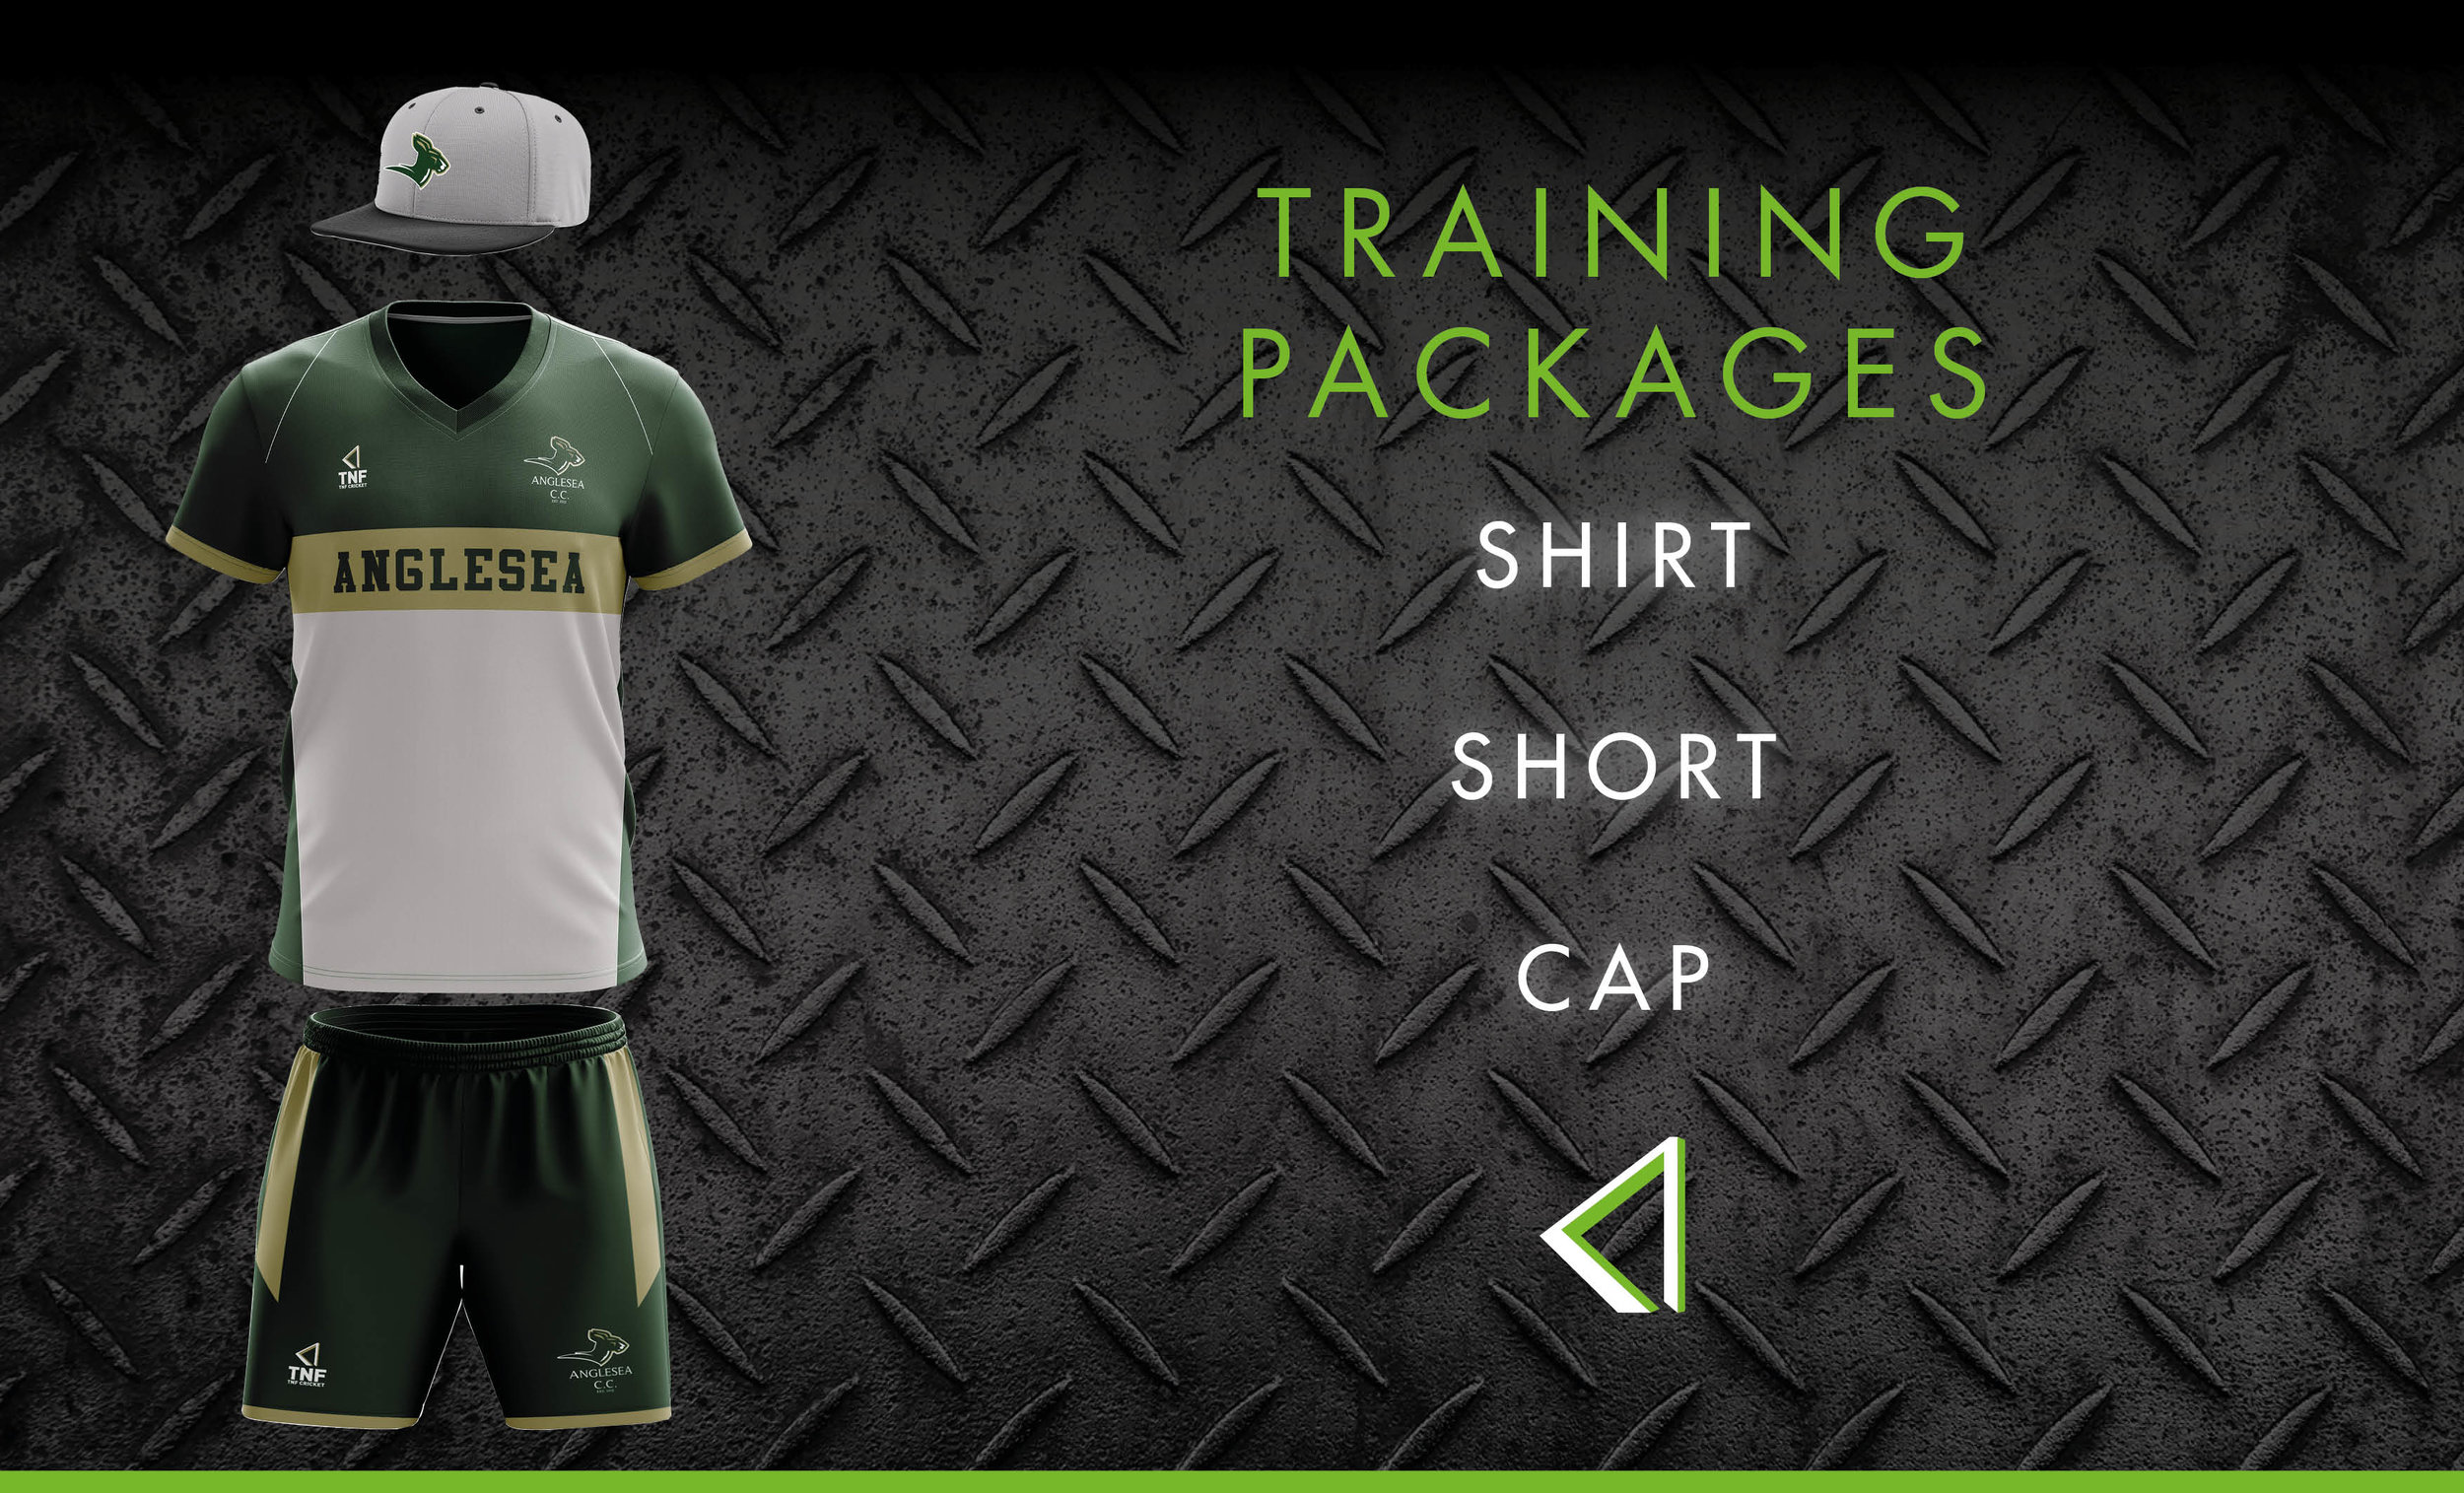 customtrainingcaps6.jpg